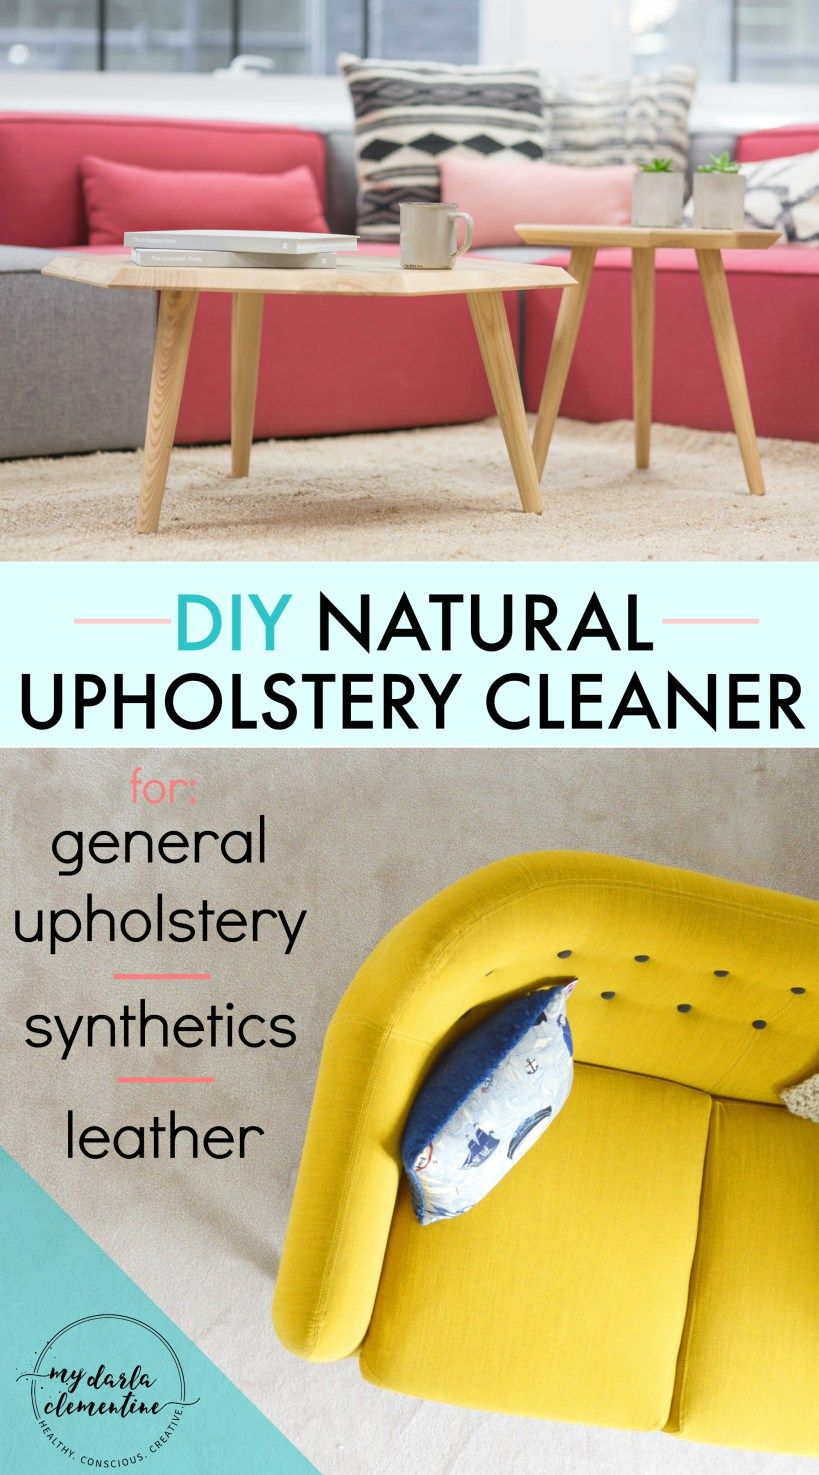 DIY upholstery cleaner recipe using all natural ingredients for general fabrics, leather, and synthetic/plastic materials and car seats.